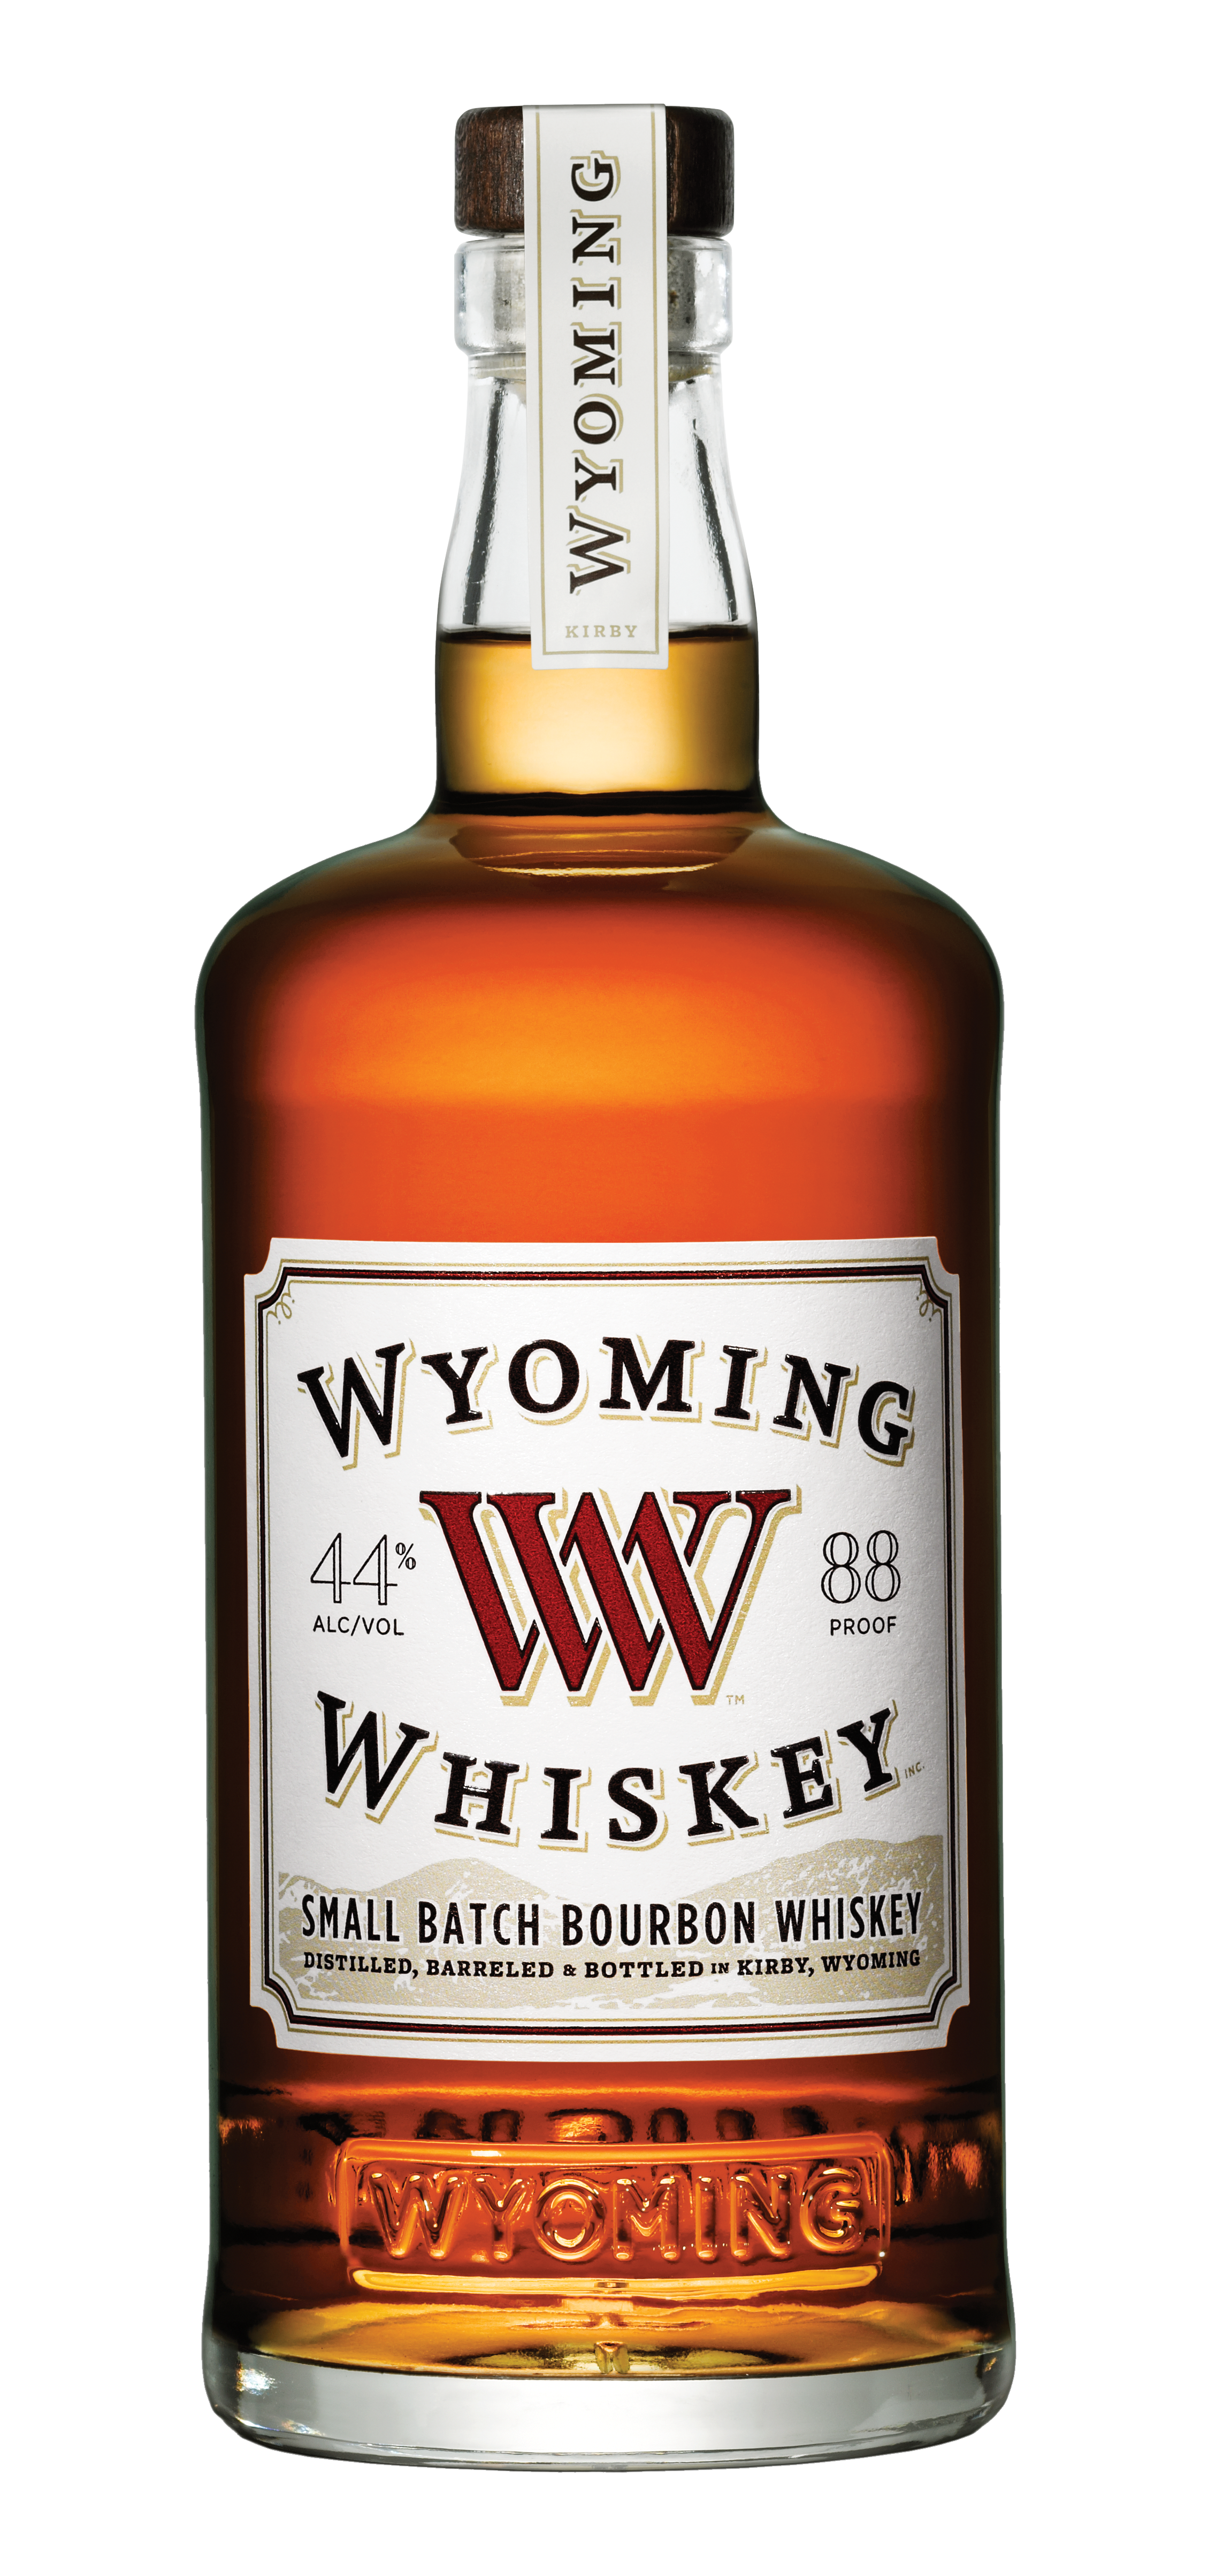 Wyoming Whiskey S Small Batch Bourbon Whiskey Review The Casks